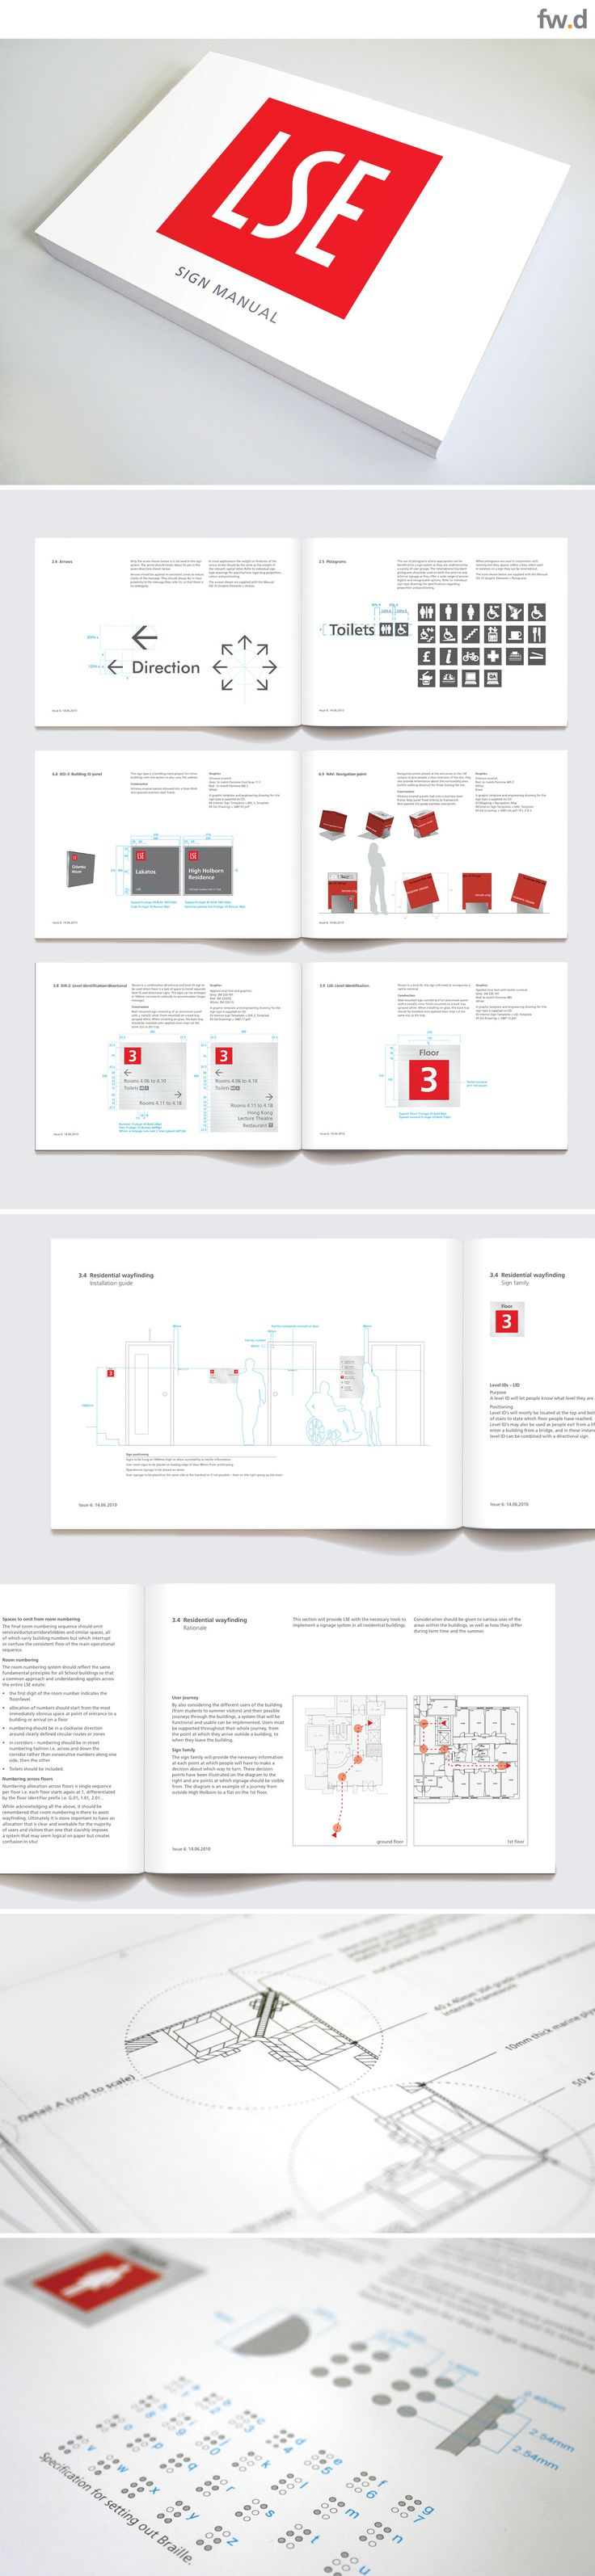 Design guidelines for LSE campus signage & wayfinding by fwdesign. www.fwdesign.com #guidelines #layout #manufacture